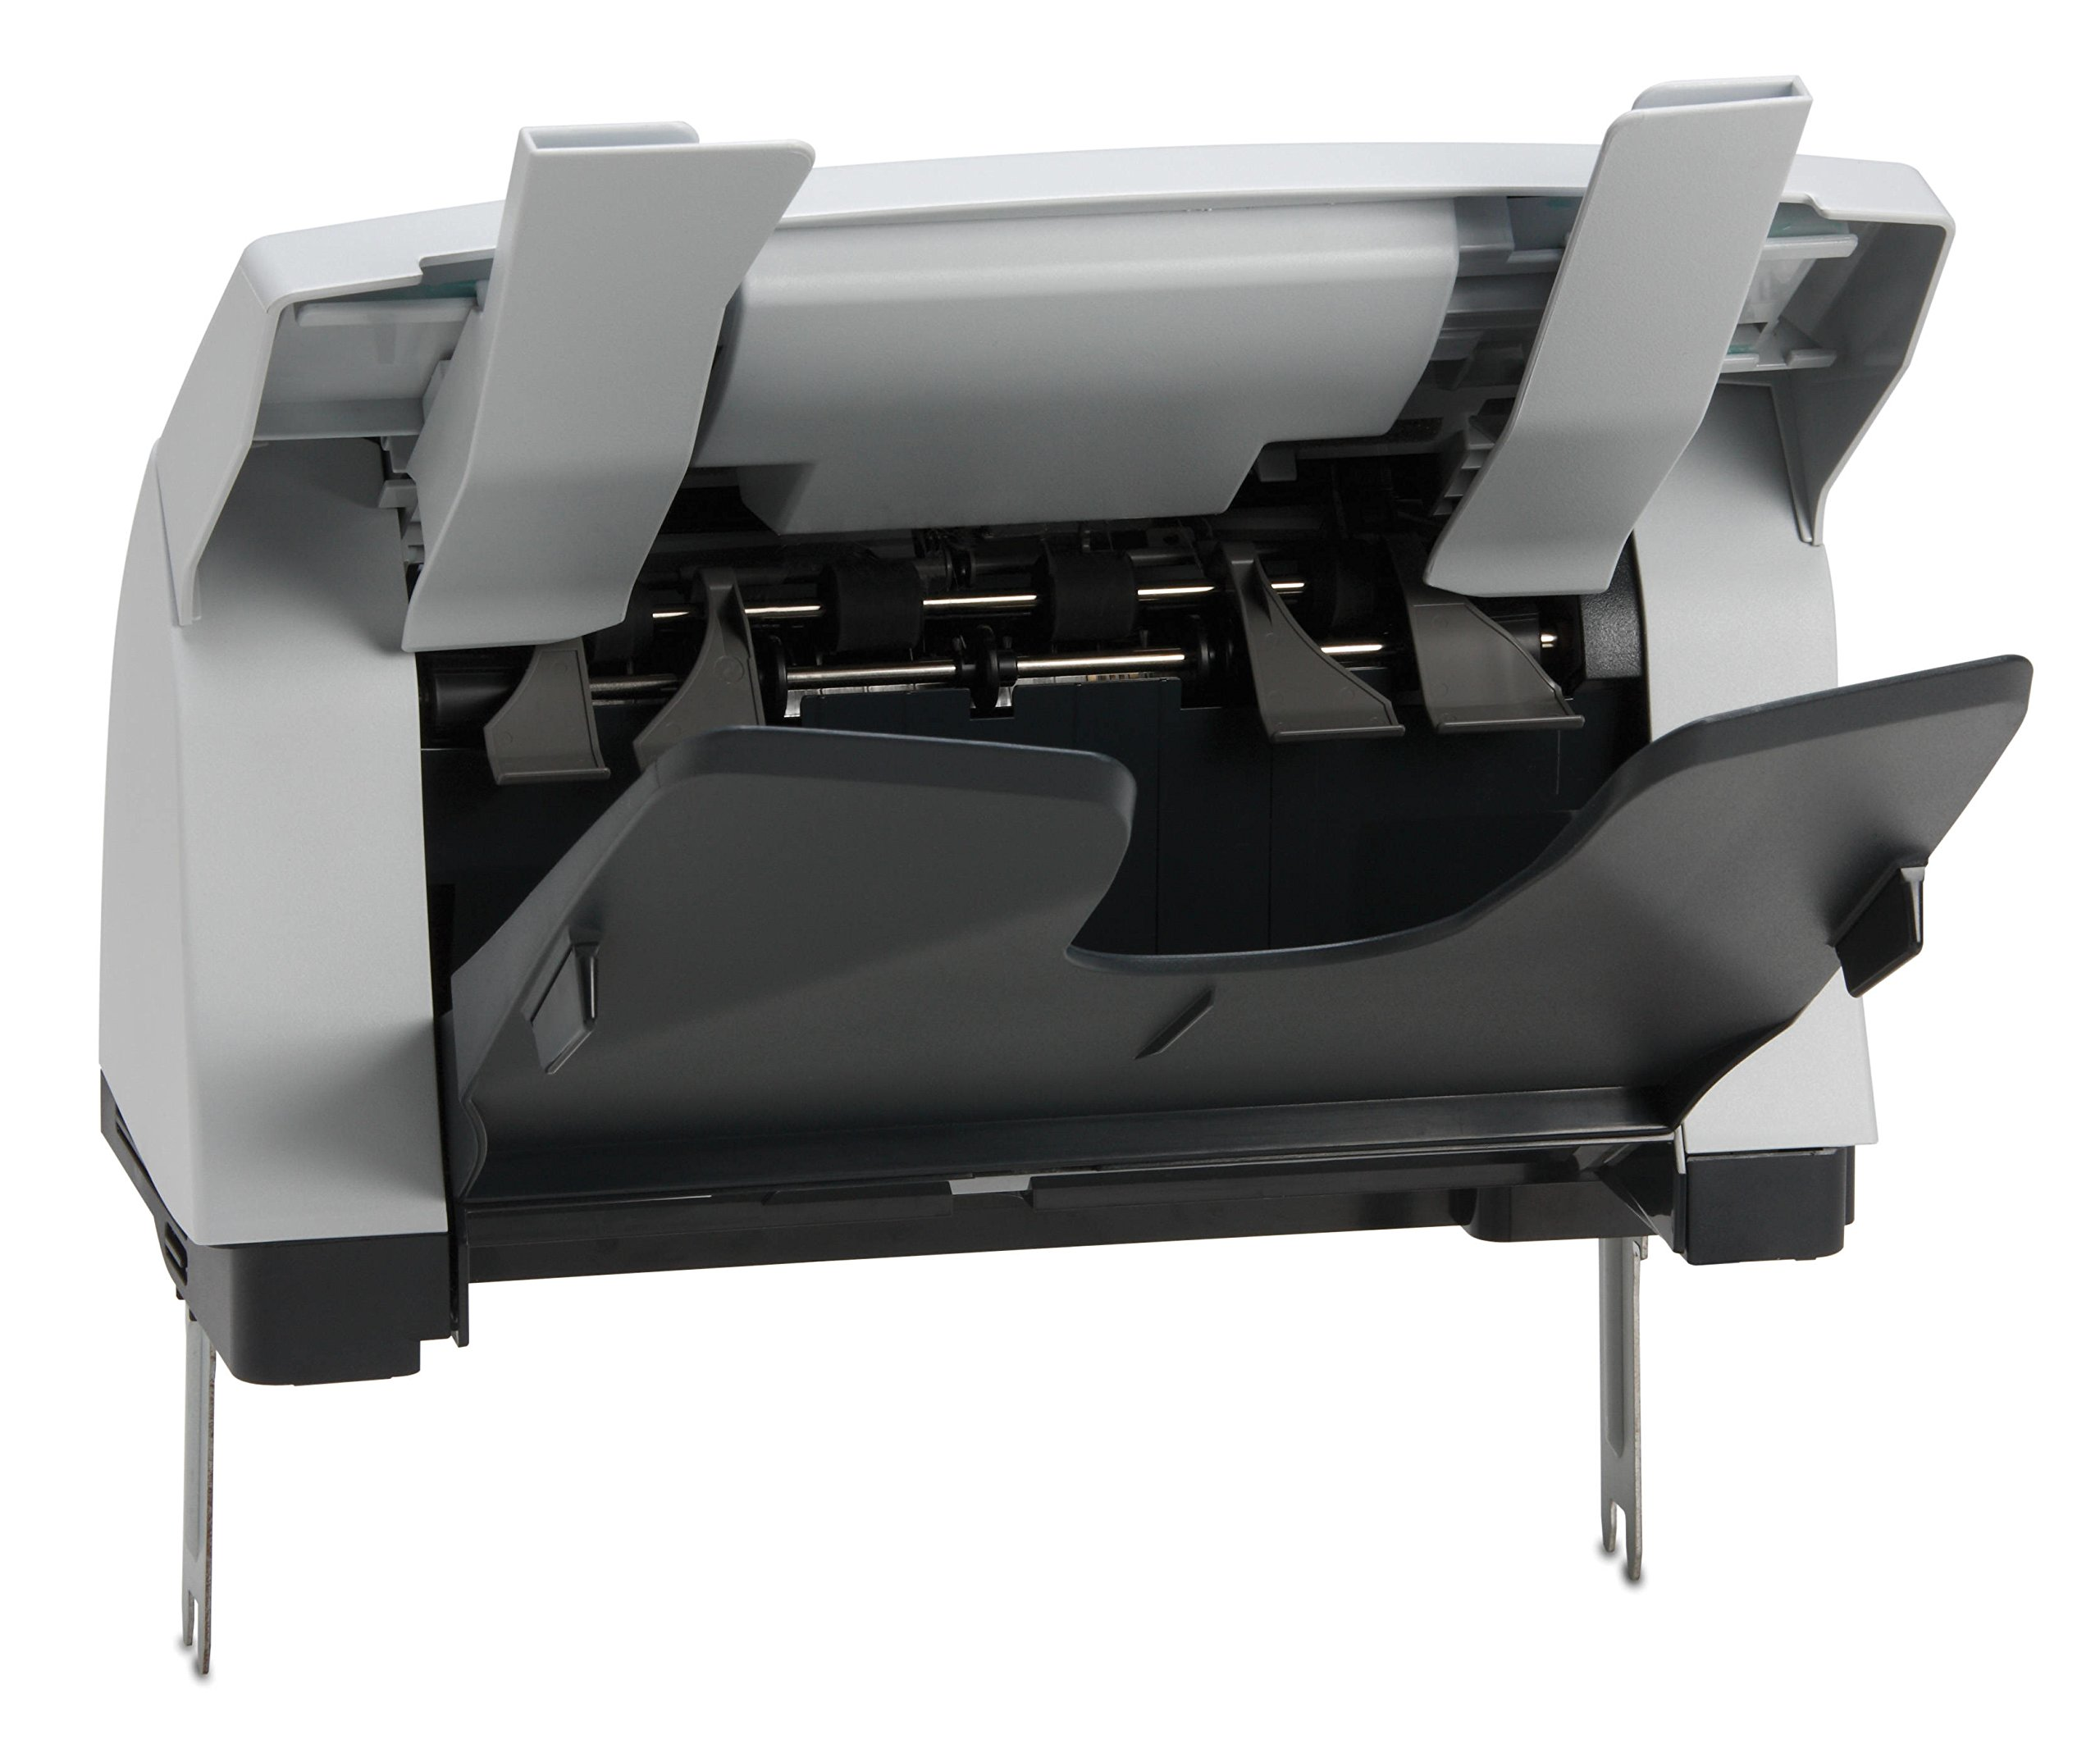 HEWCE404A - HP Stacker for Laserjet Enterprise 600 Series